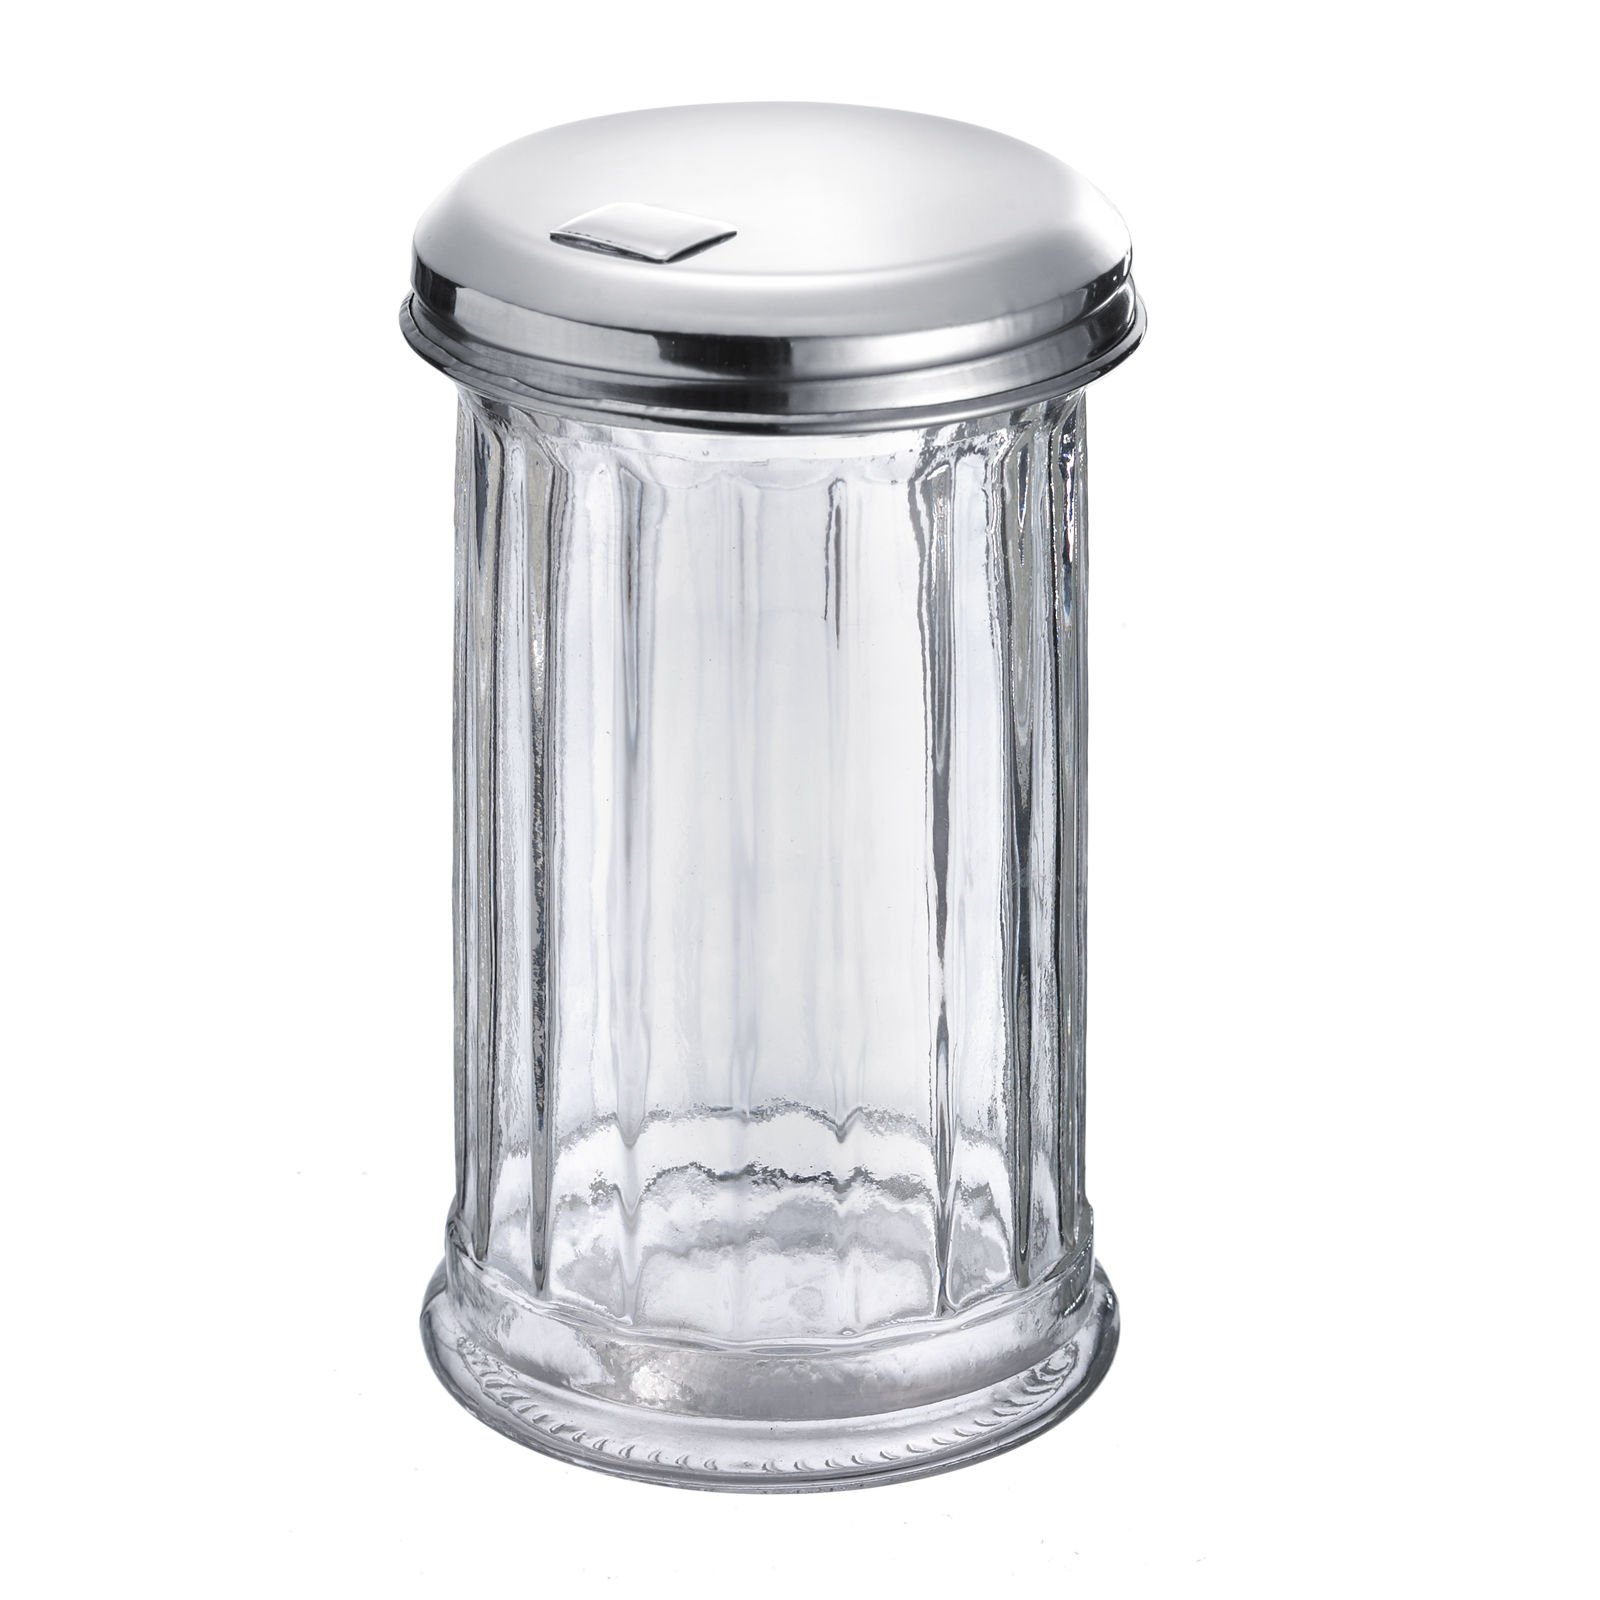 Westmark Germany 'New York' Glass Sugar Dispenser with a Flap Top, Stainless Steel